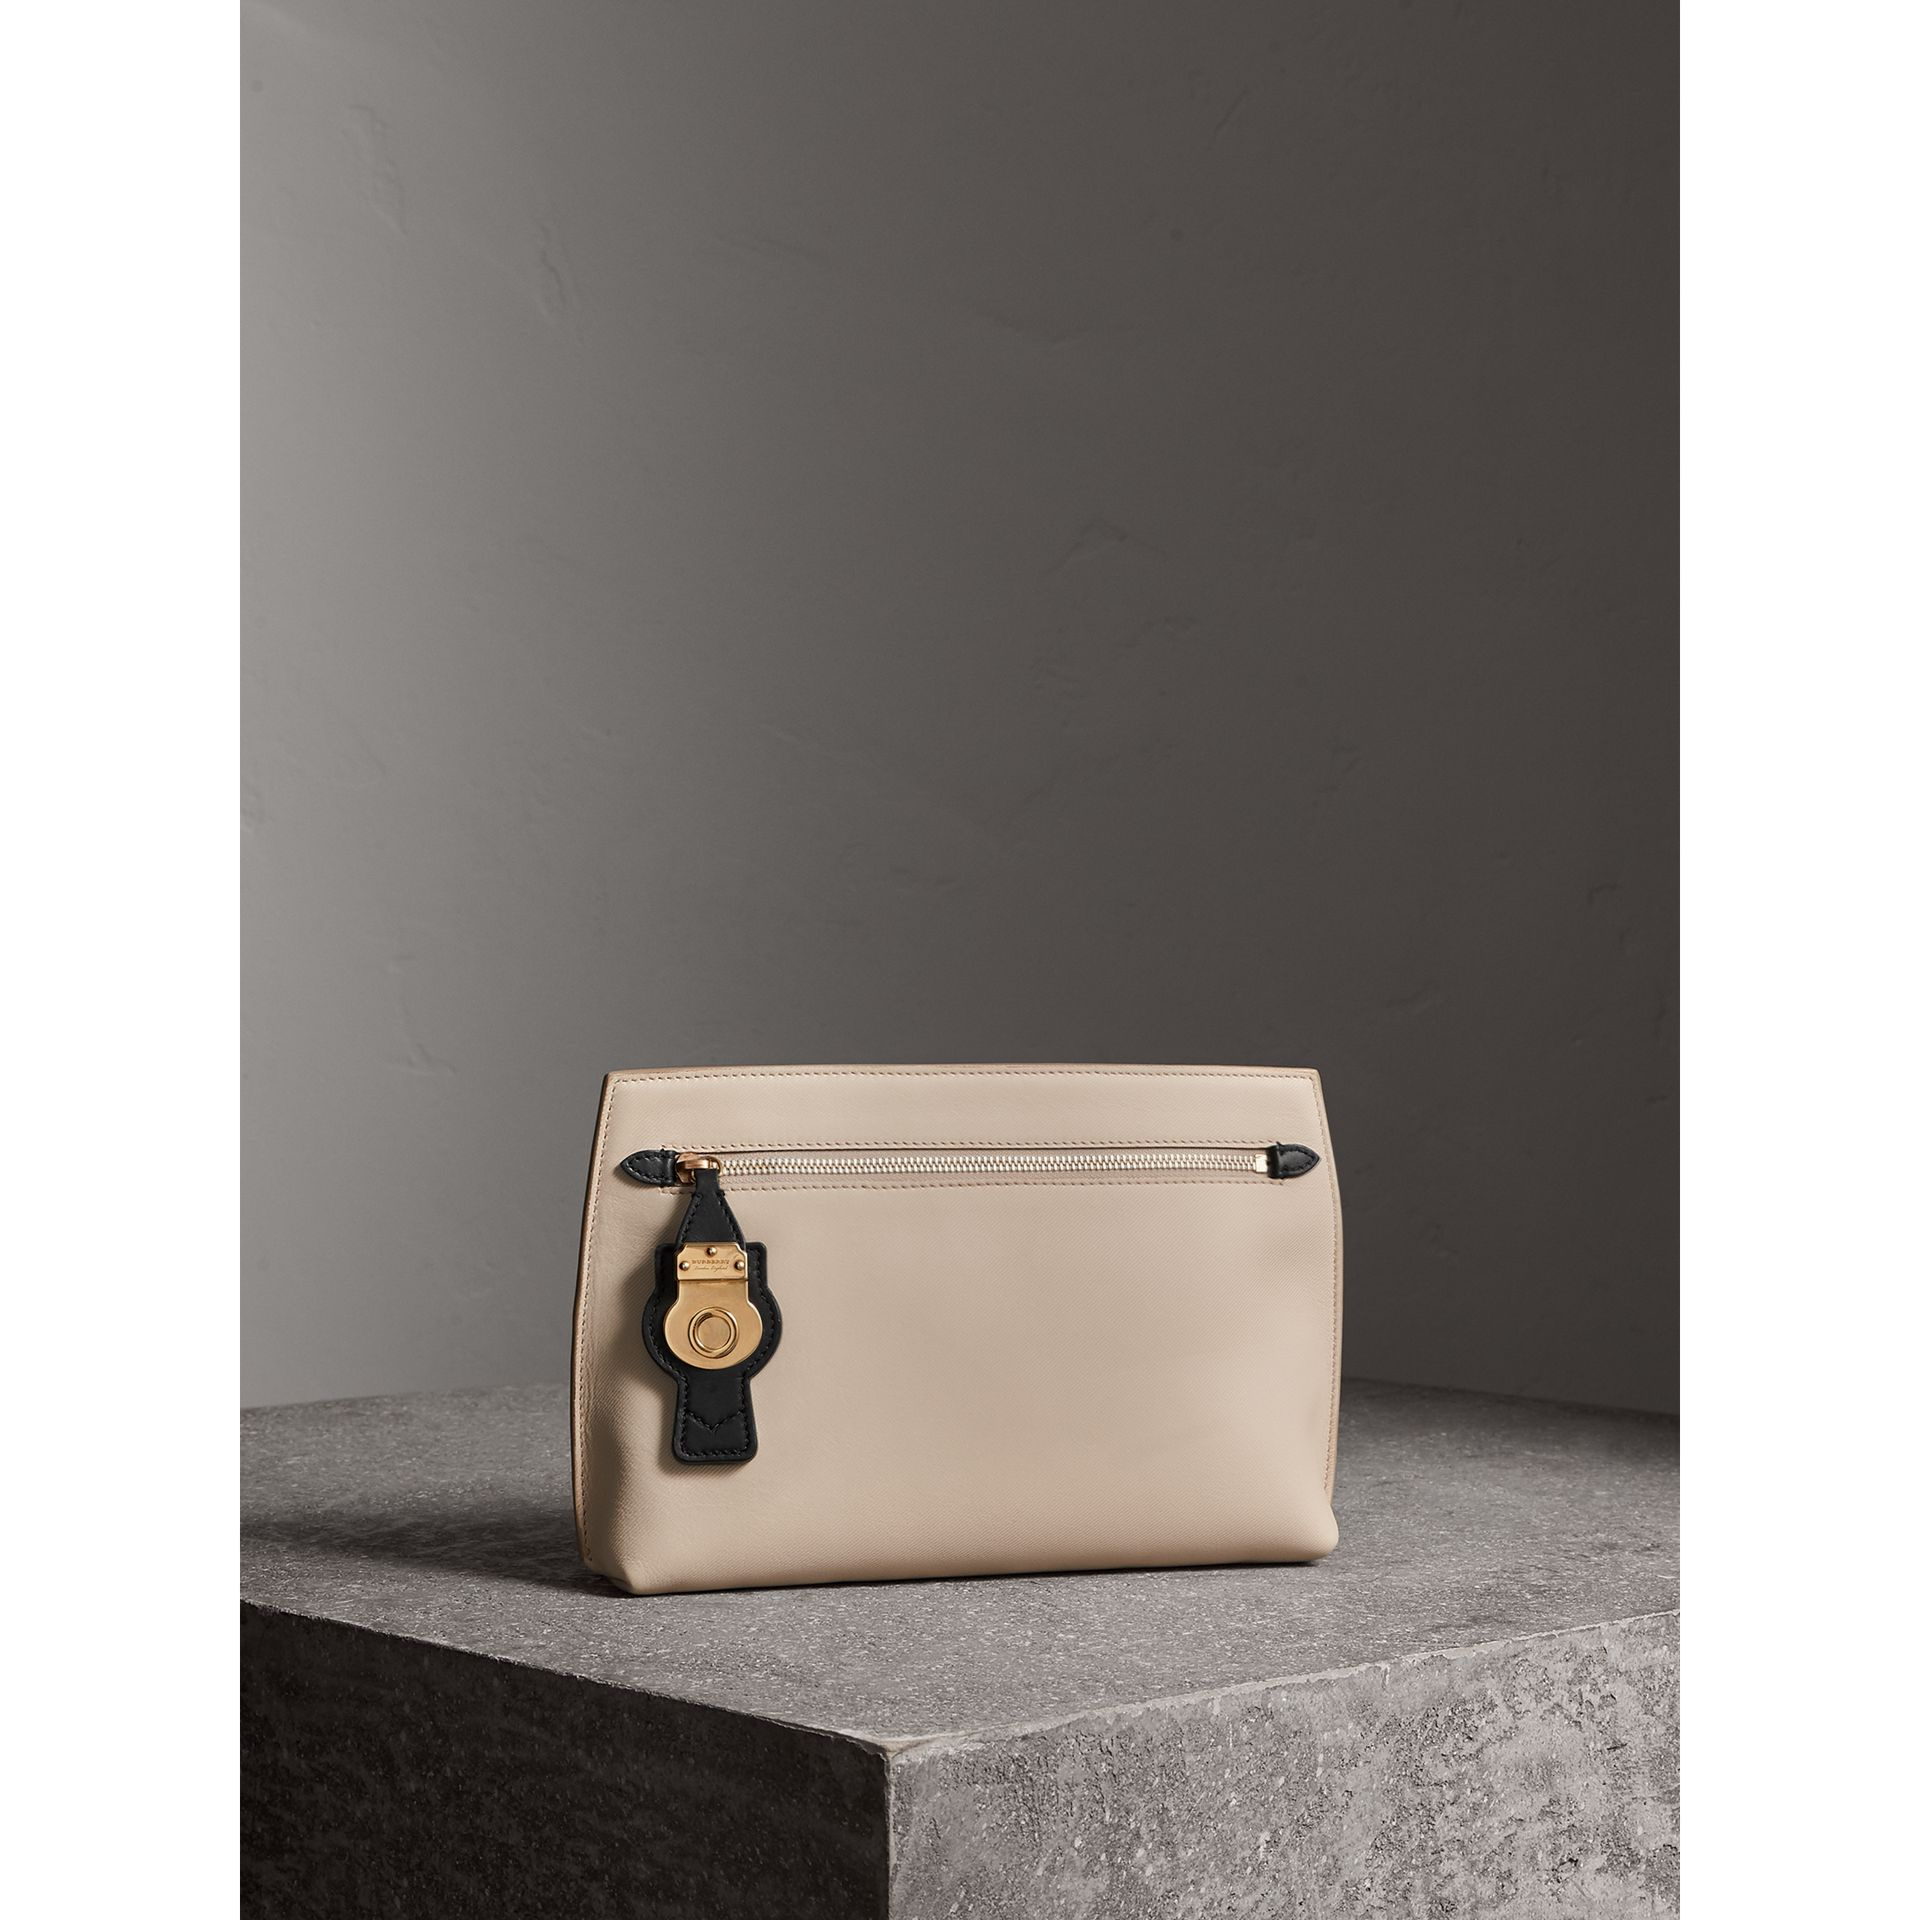 Two-tone Trench Leather Wristlet Pouch in Limestone/black - Women | Burberry - gallery image 5